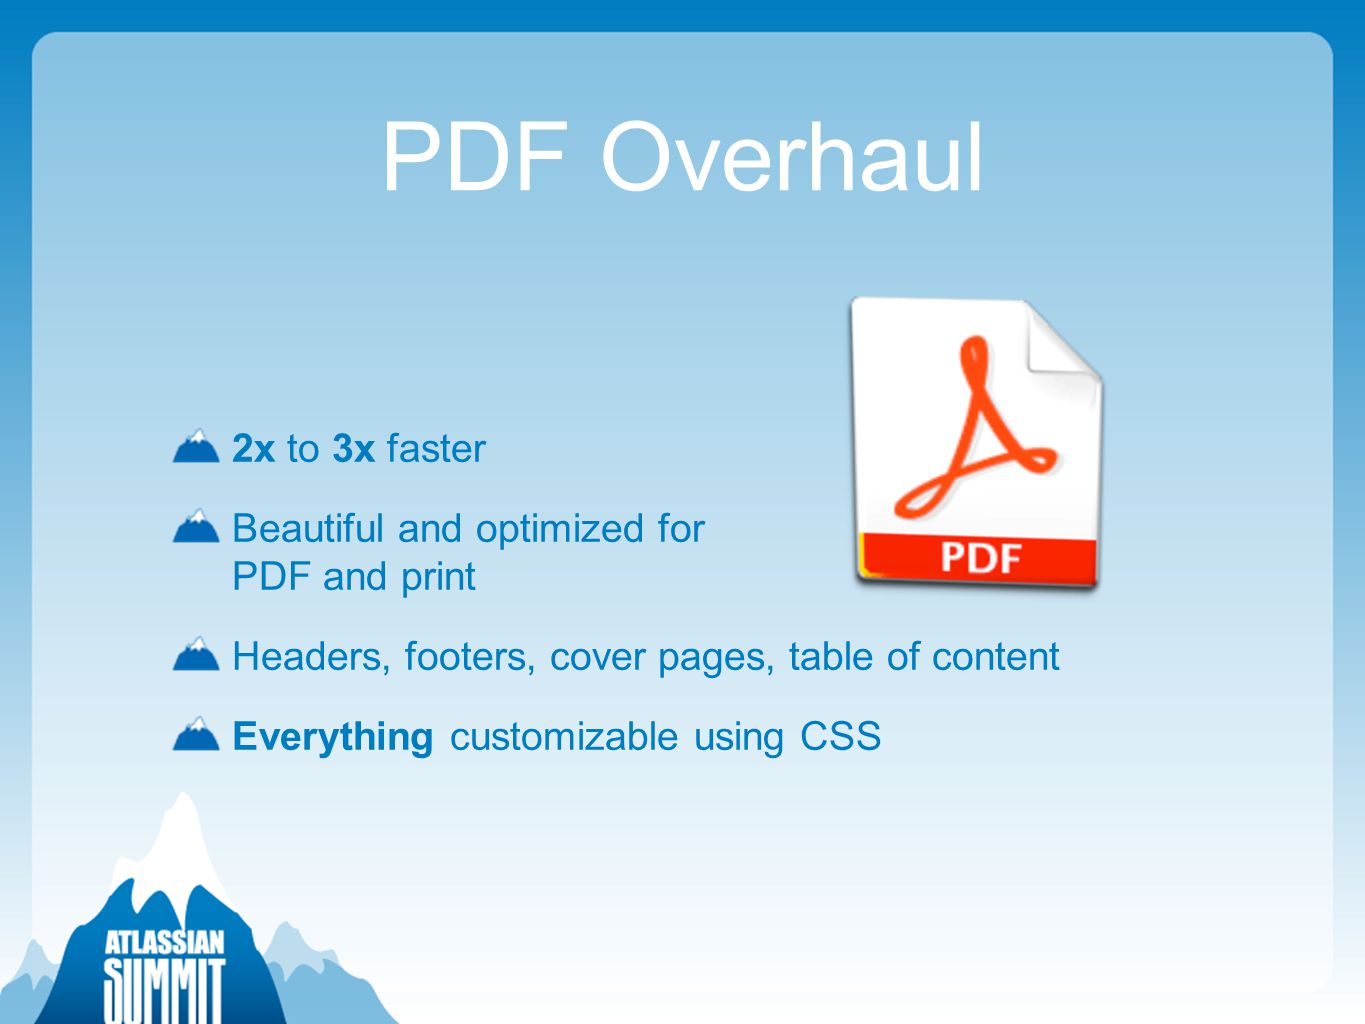 PDF Overhaul 2x to 3x faster Beautiful and optimized for PDF and print Headers, footers, cover pages, table of content Everything customizable using CSS